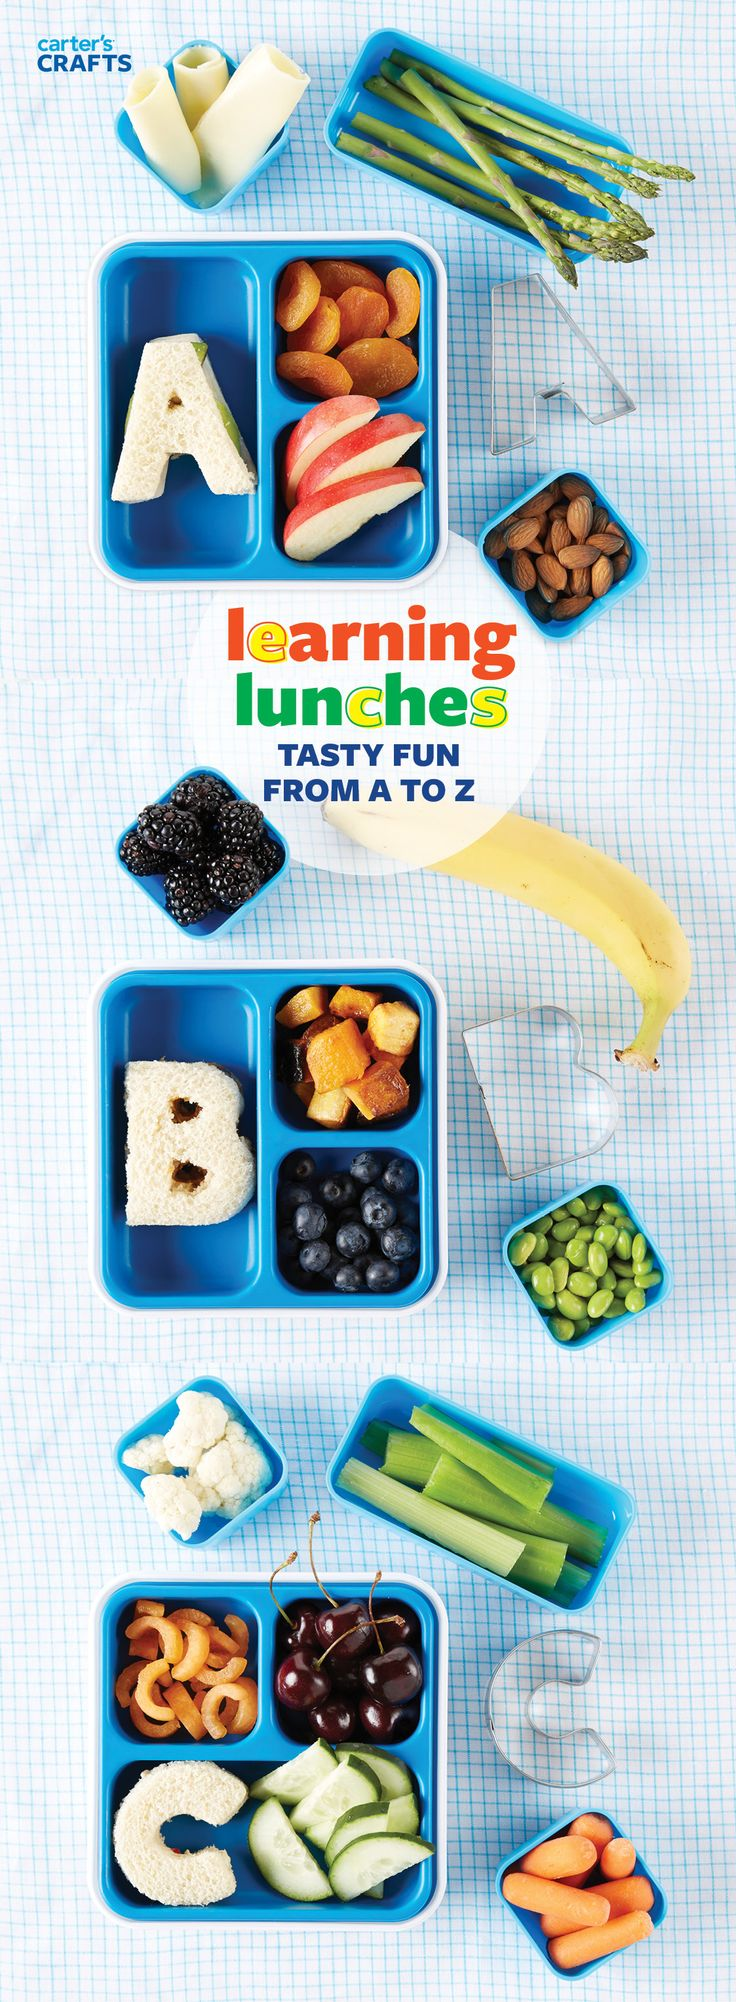 Learning Lunches are a brilliant way to teach your kids about a variety of healthy foods! Get alphabet cookie cutters and start with A for apples, almonds, apricots and asparagus. Add some avocado to a turkey sandwich and you have a balanced meal!